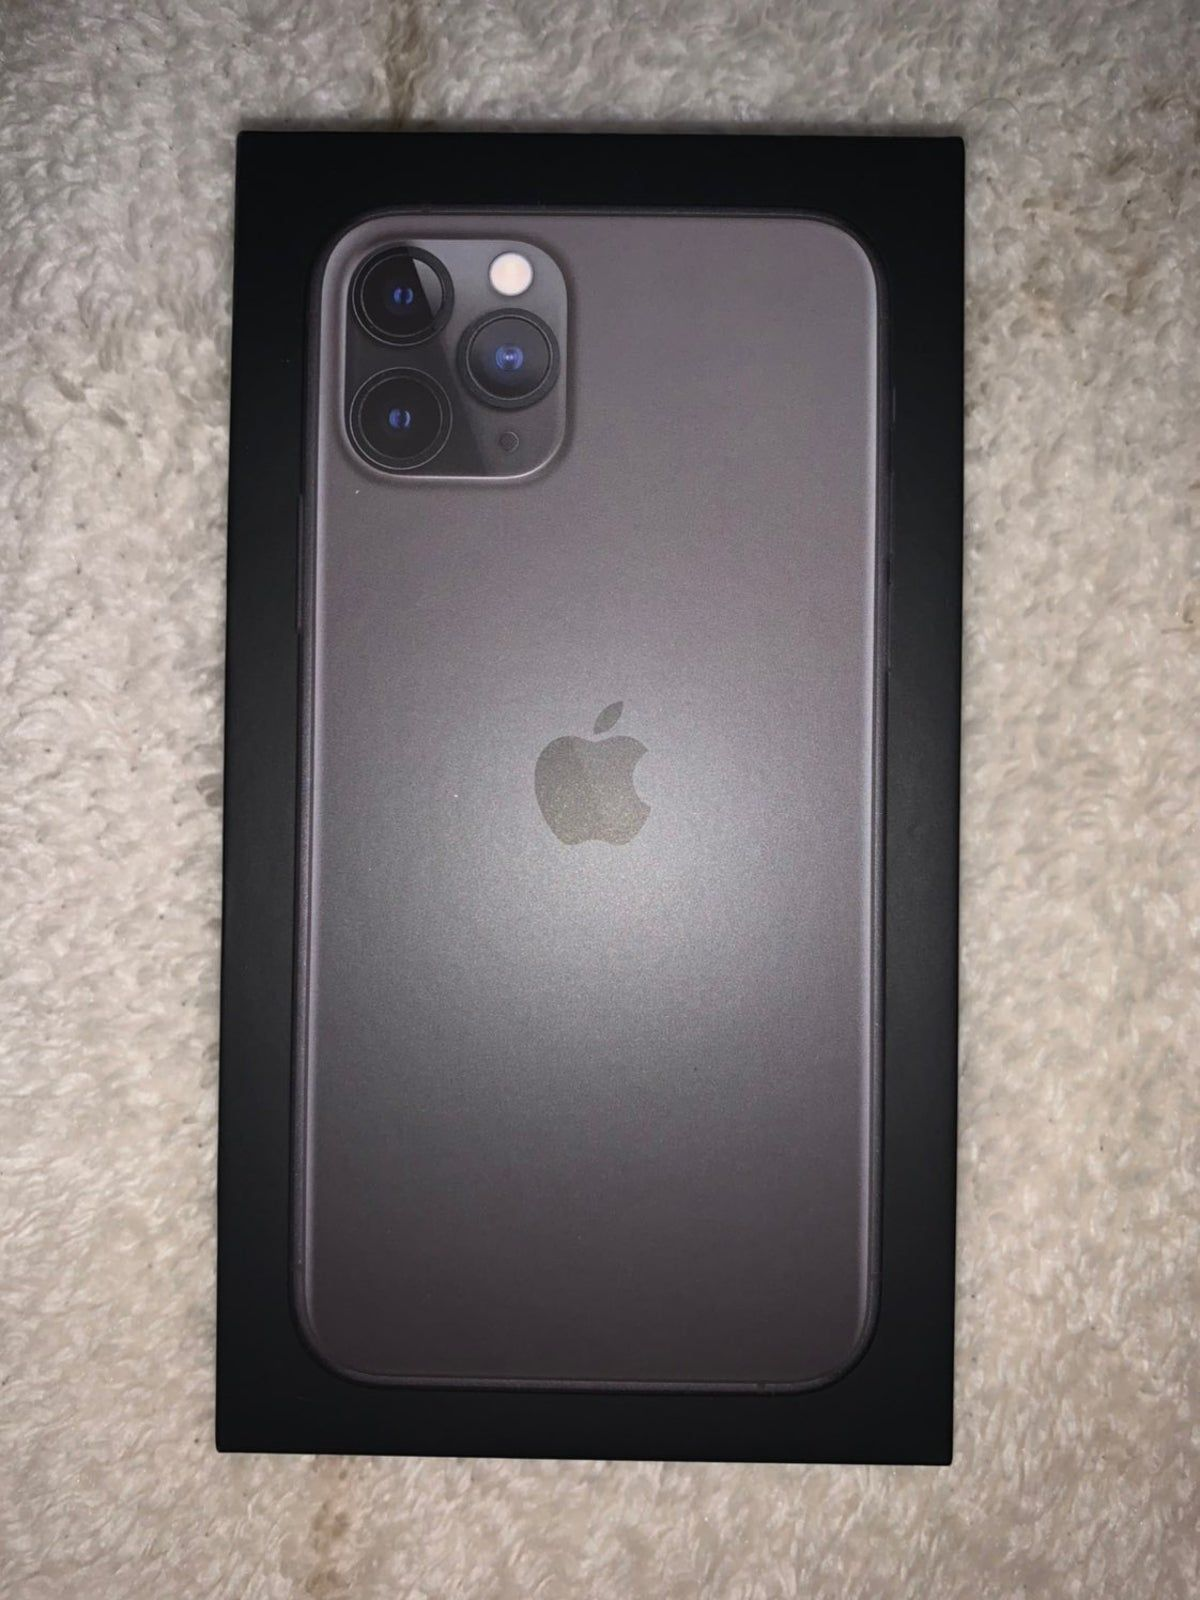 New Apple Iphone 11 Pro Max 256gb Space Gray Factory Unlocked Cdma Ideas Of Iphone 11 Pro Max Iphone11promax Apple Iphone Iphone Iphone Gifts